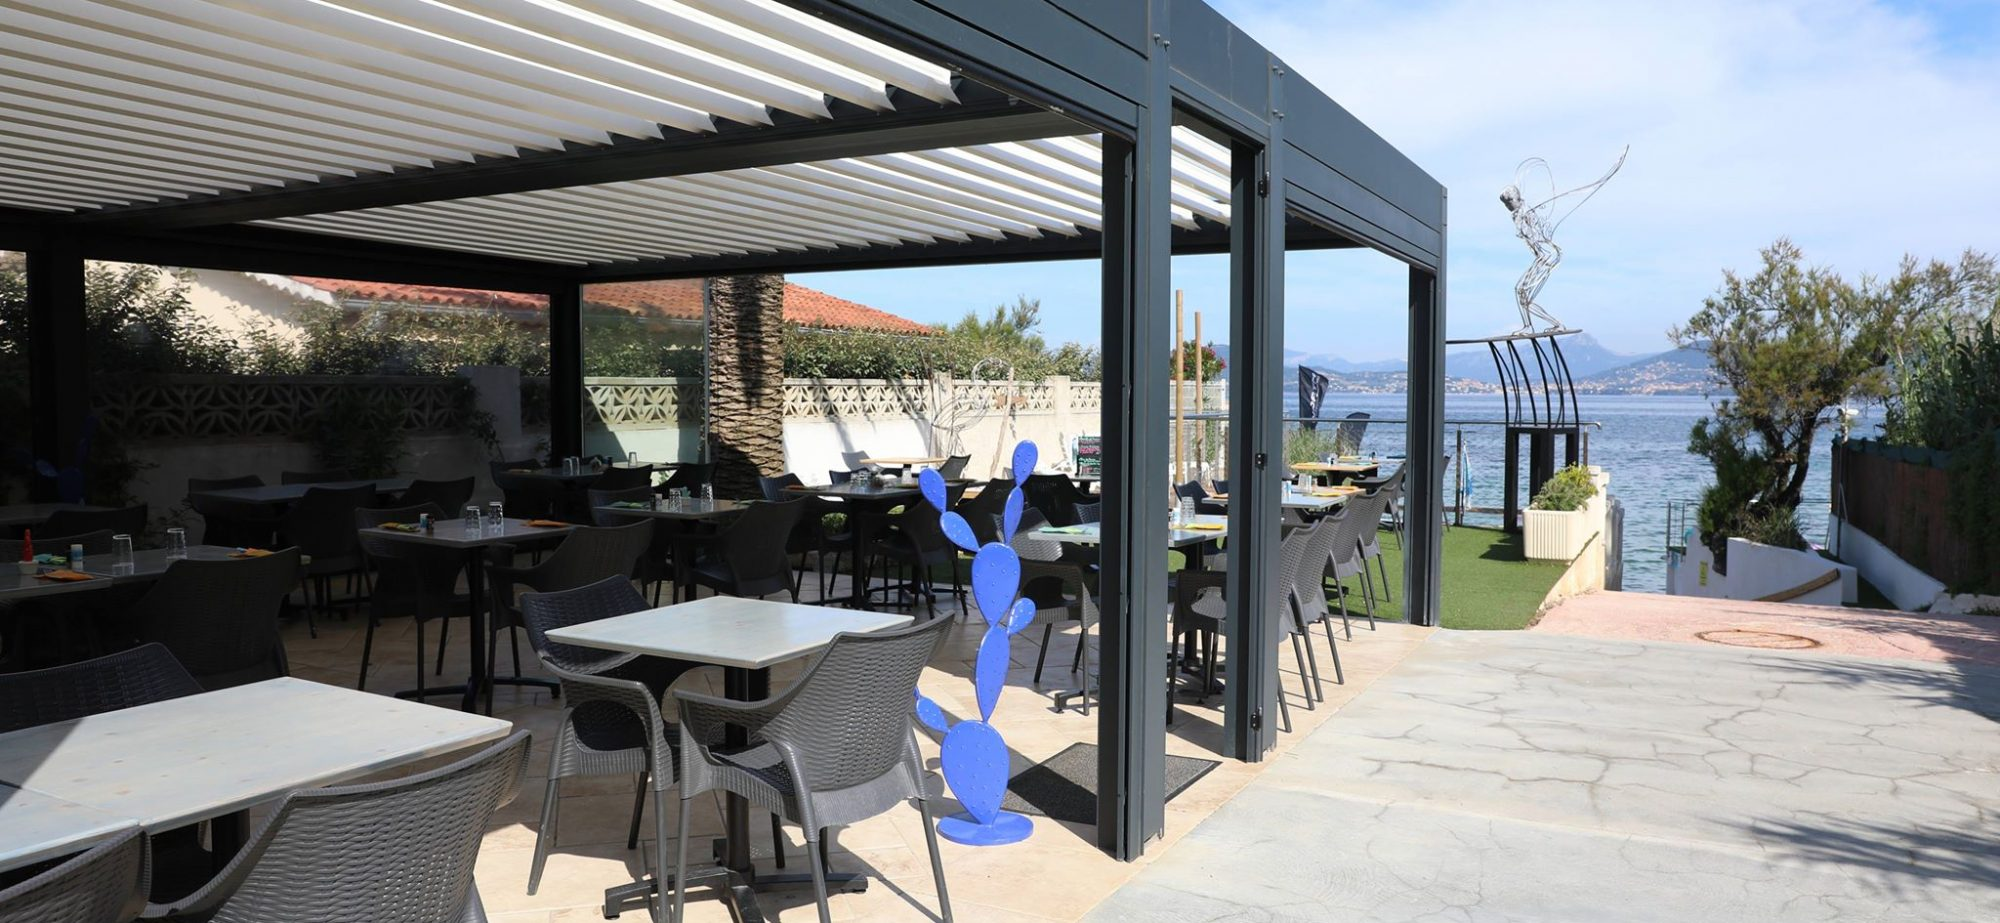 Restaurant du camping International Giens